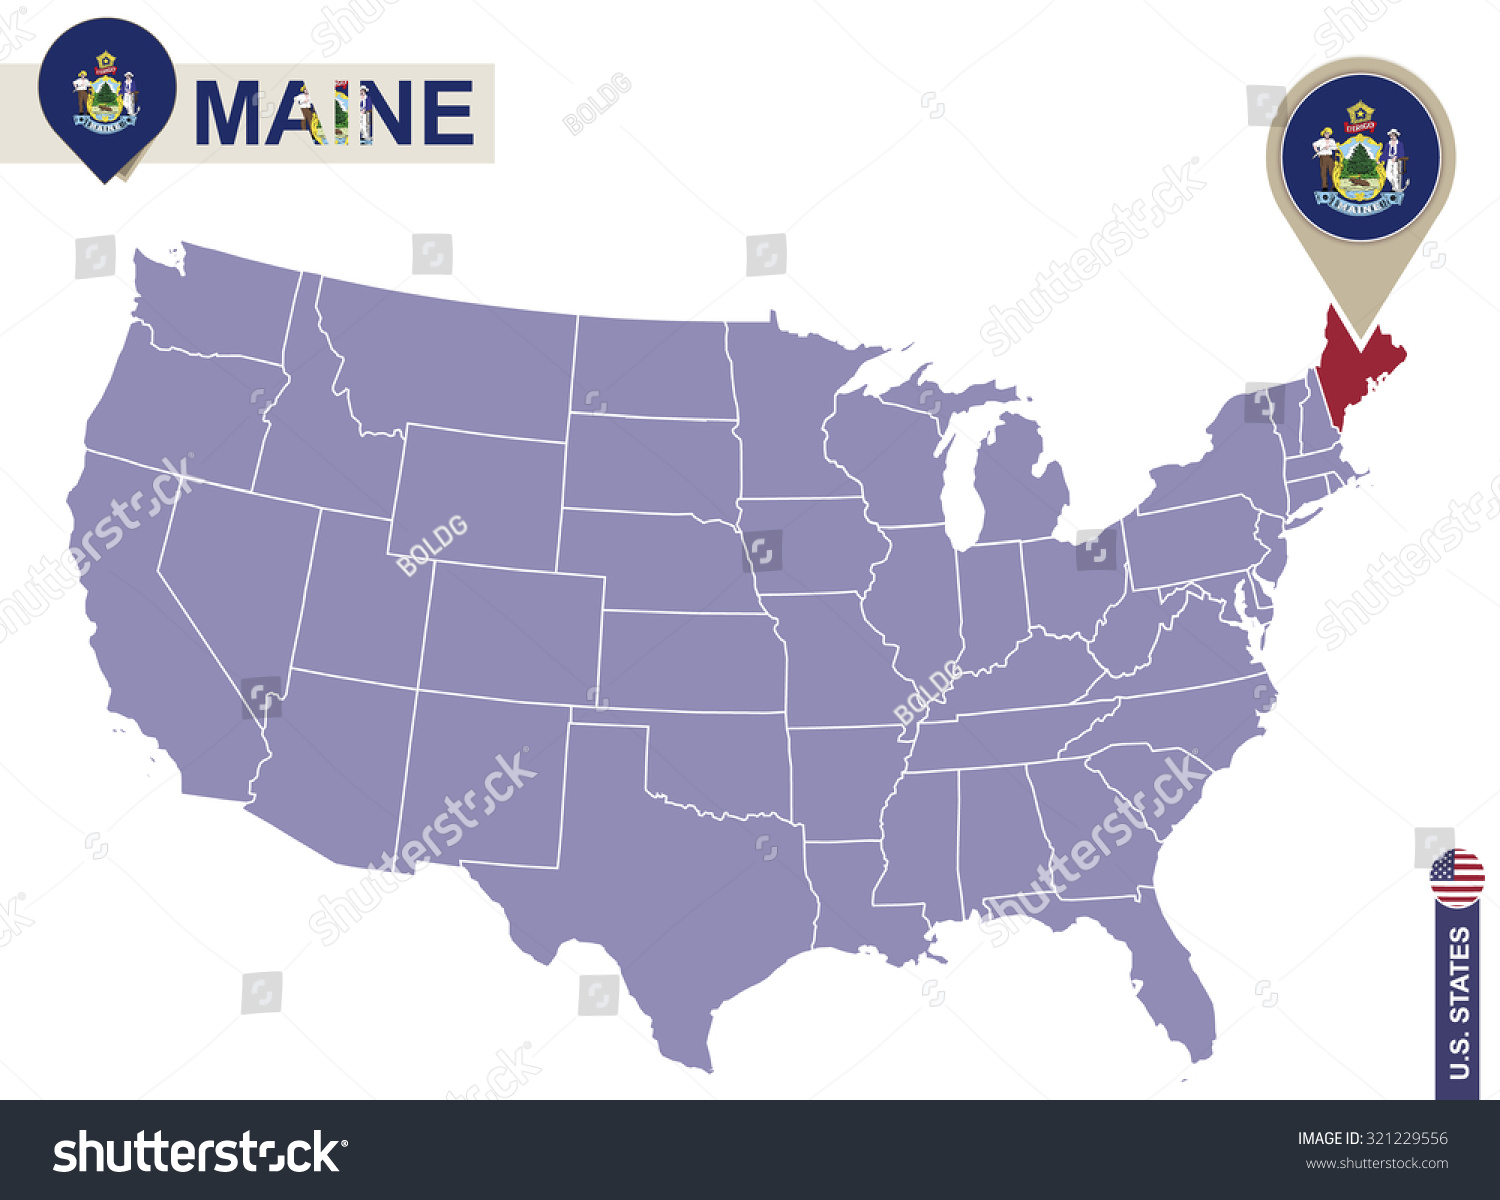 Maine State On Usa Map Maine Stock Vector 321229556 Shutterstock